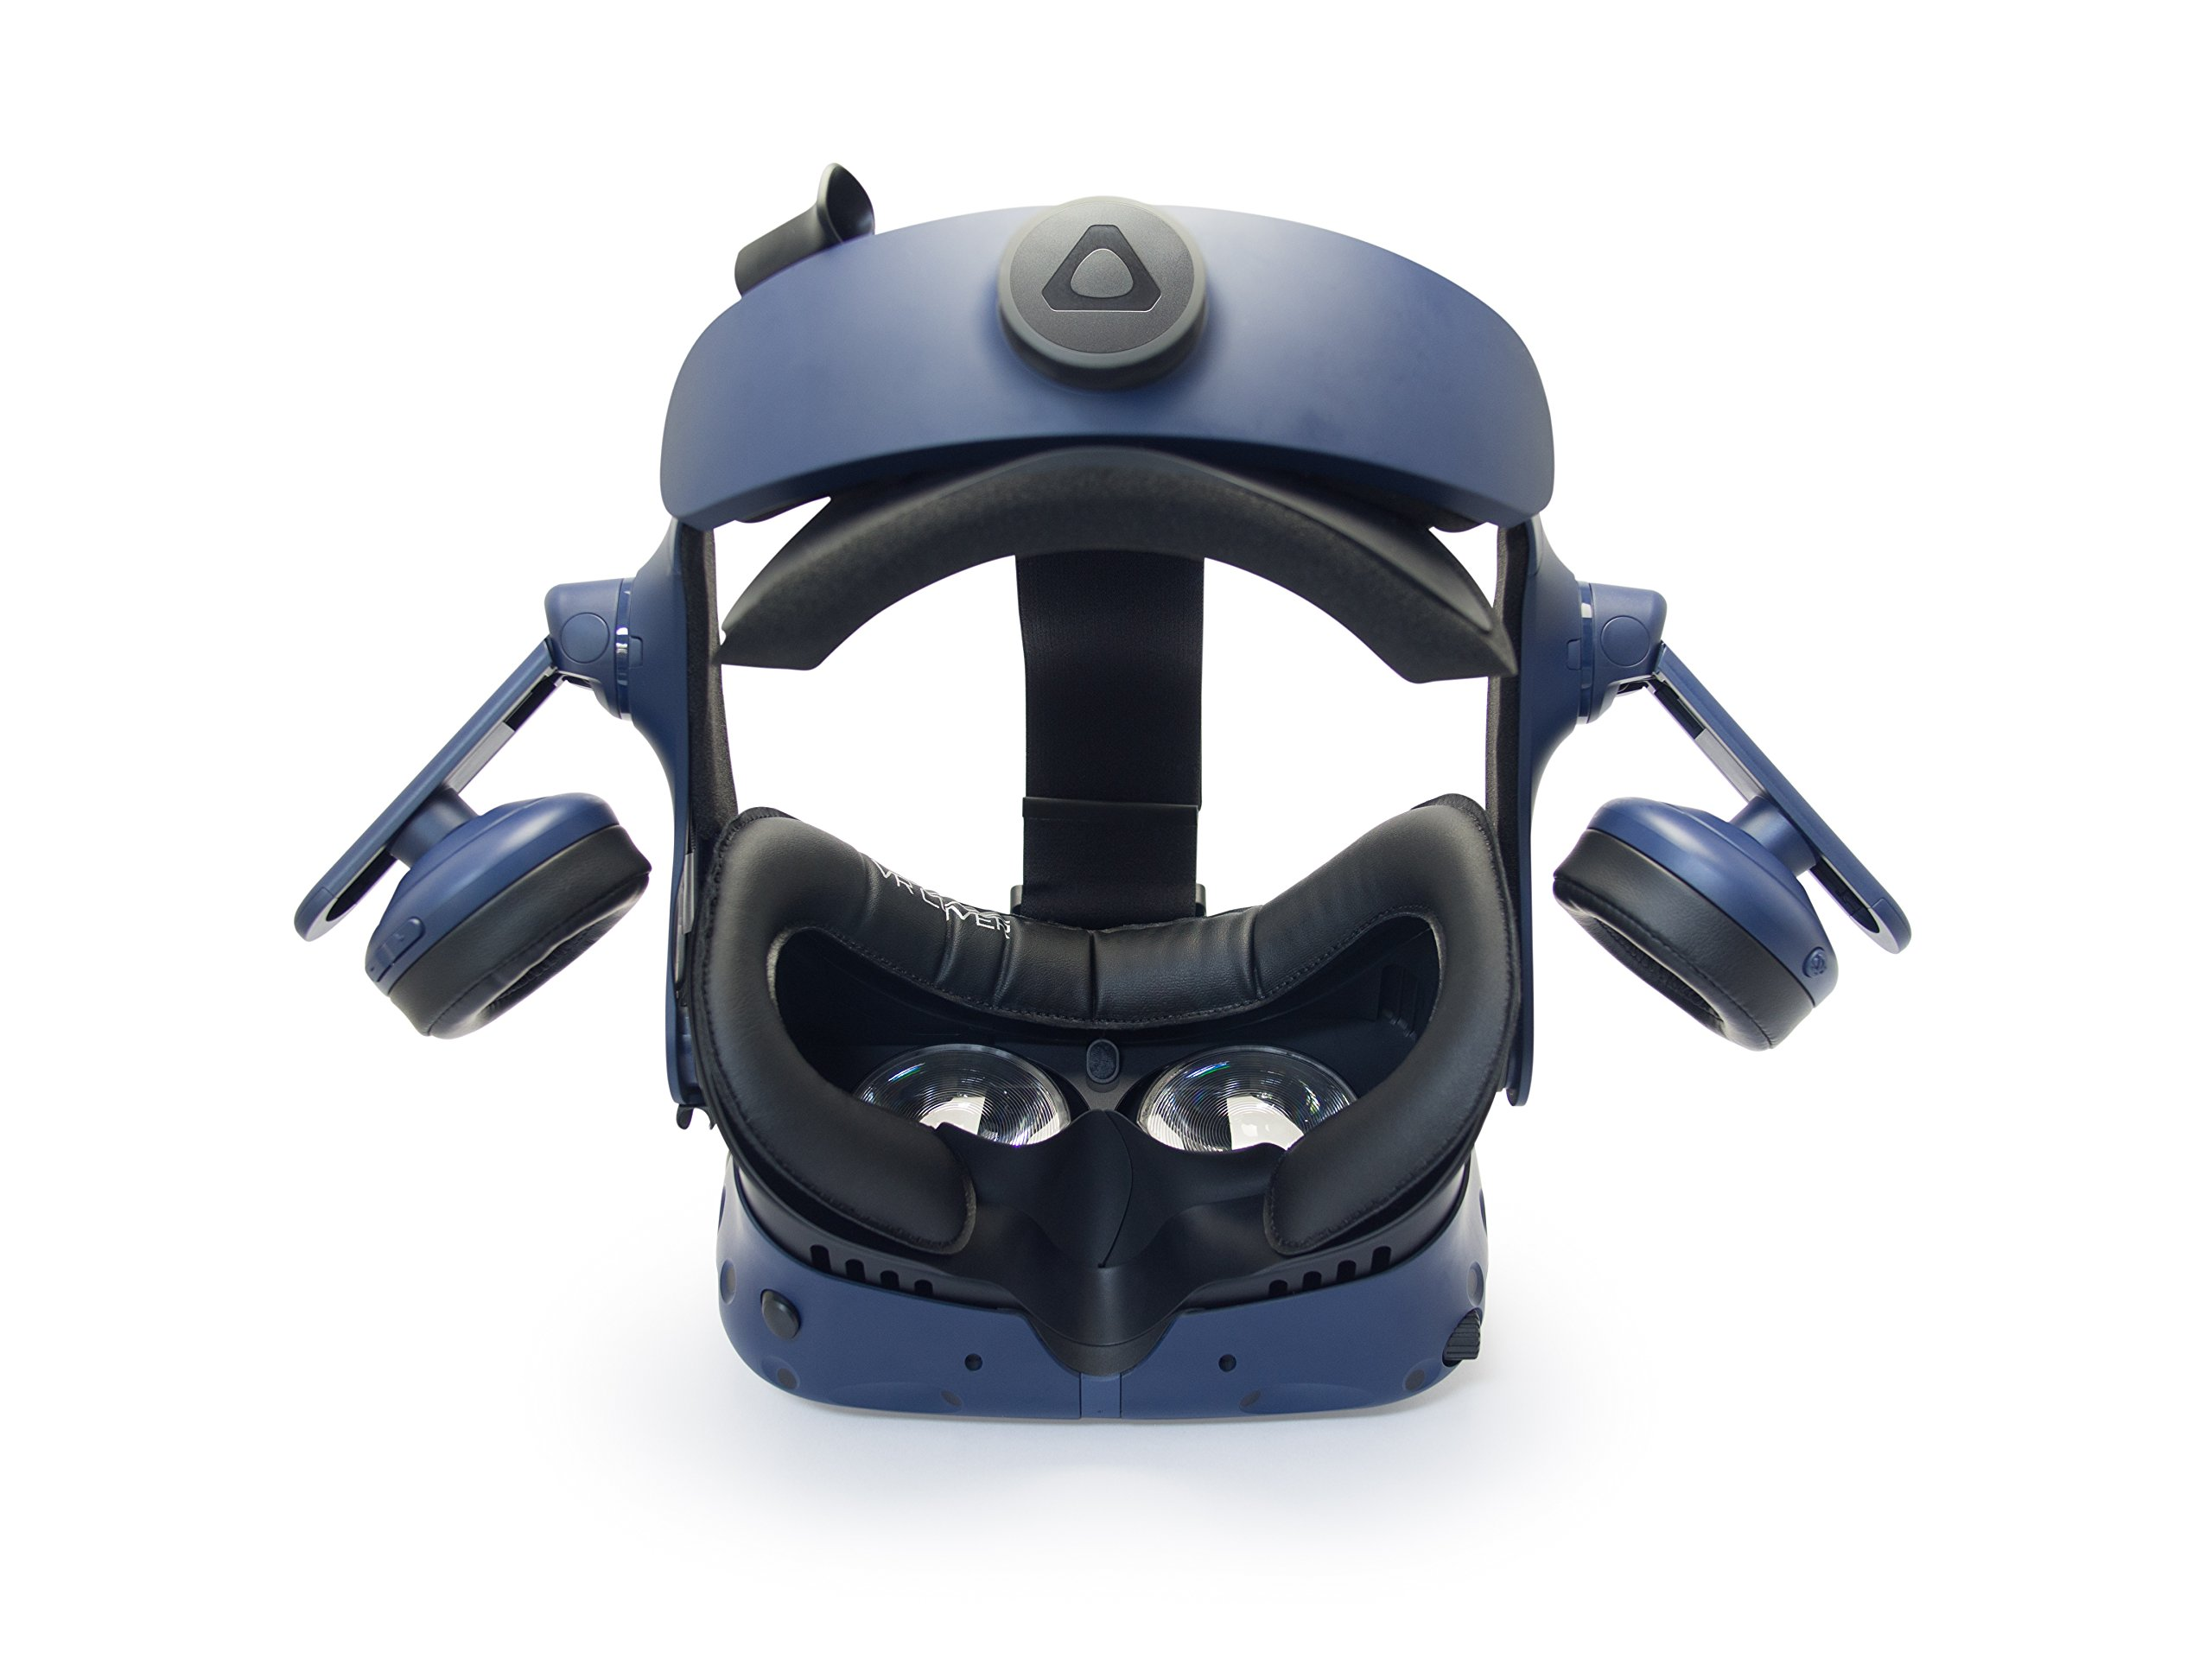 VR Cover HTC Vive Pro Foam Replacements 16mm